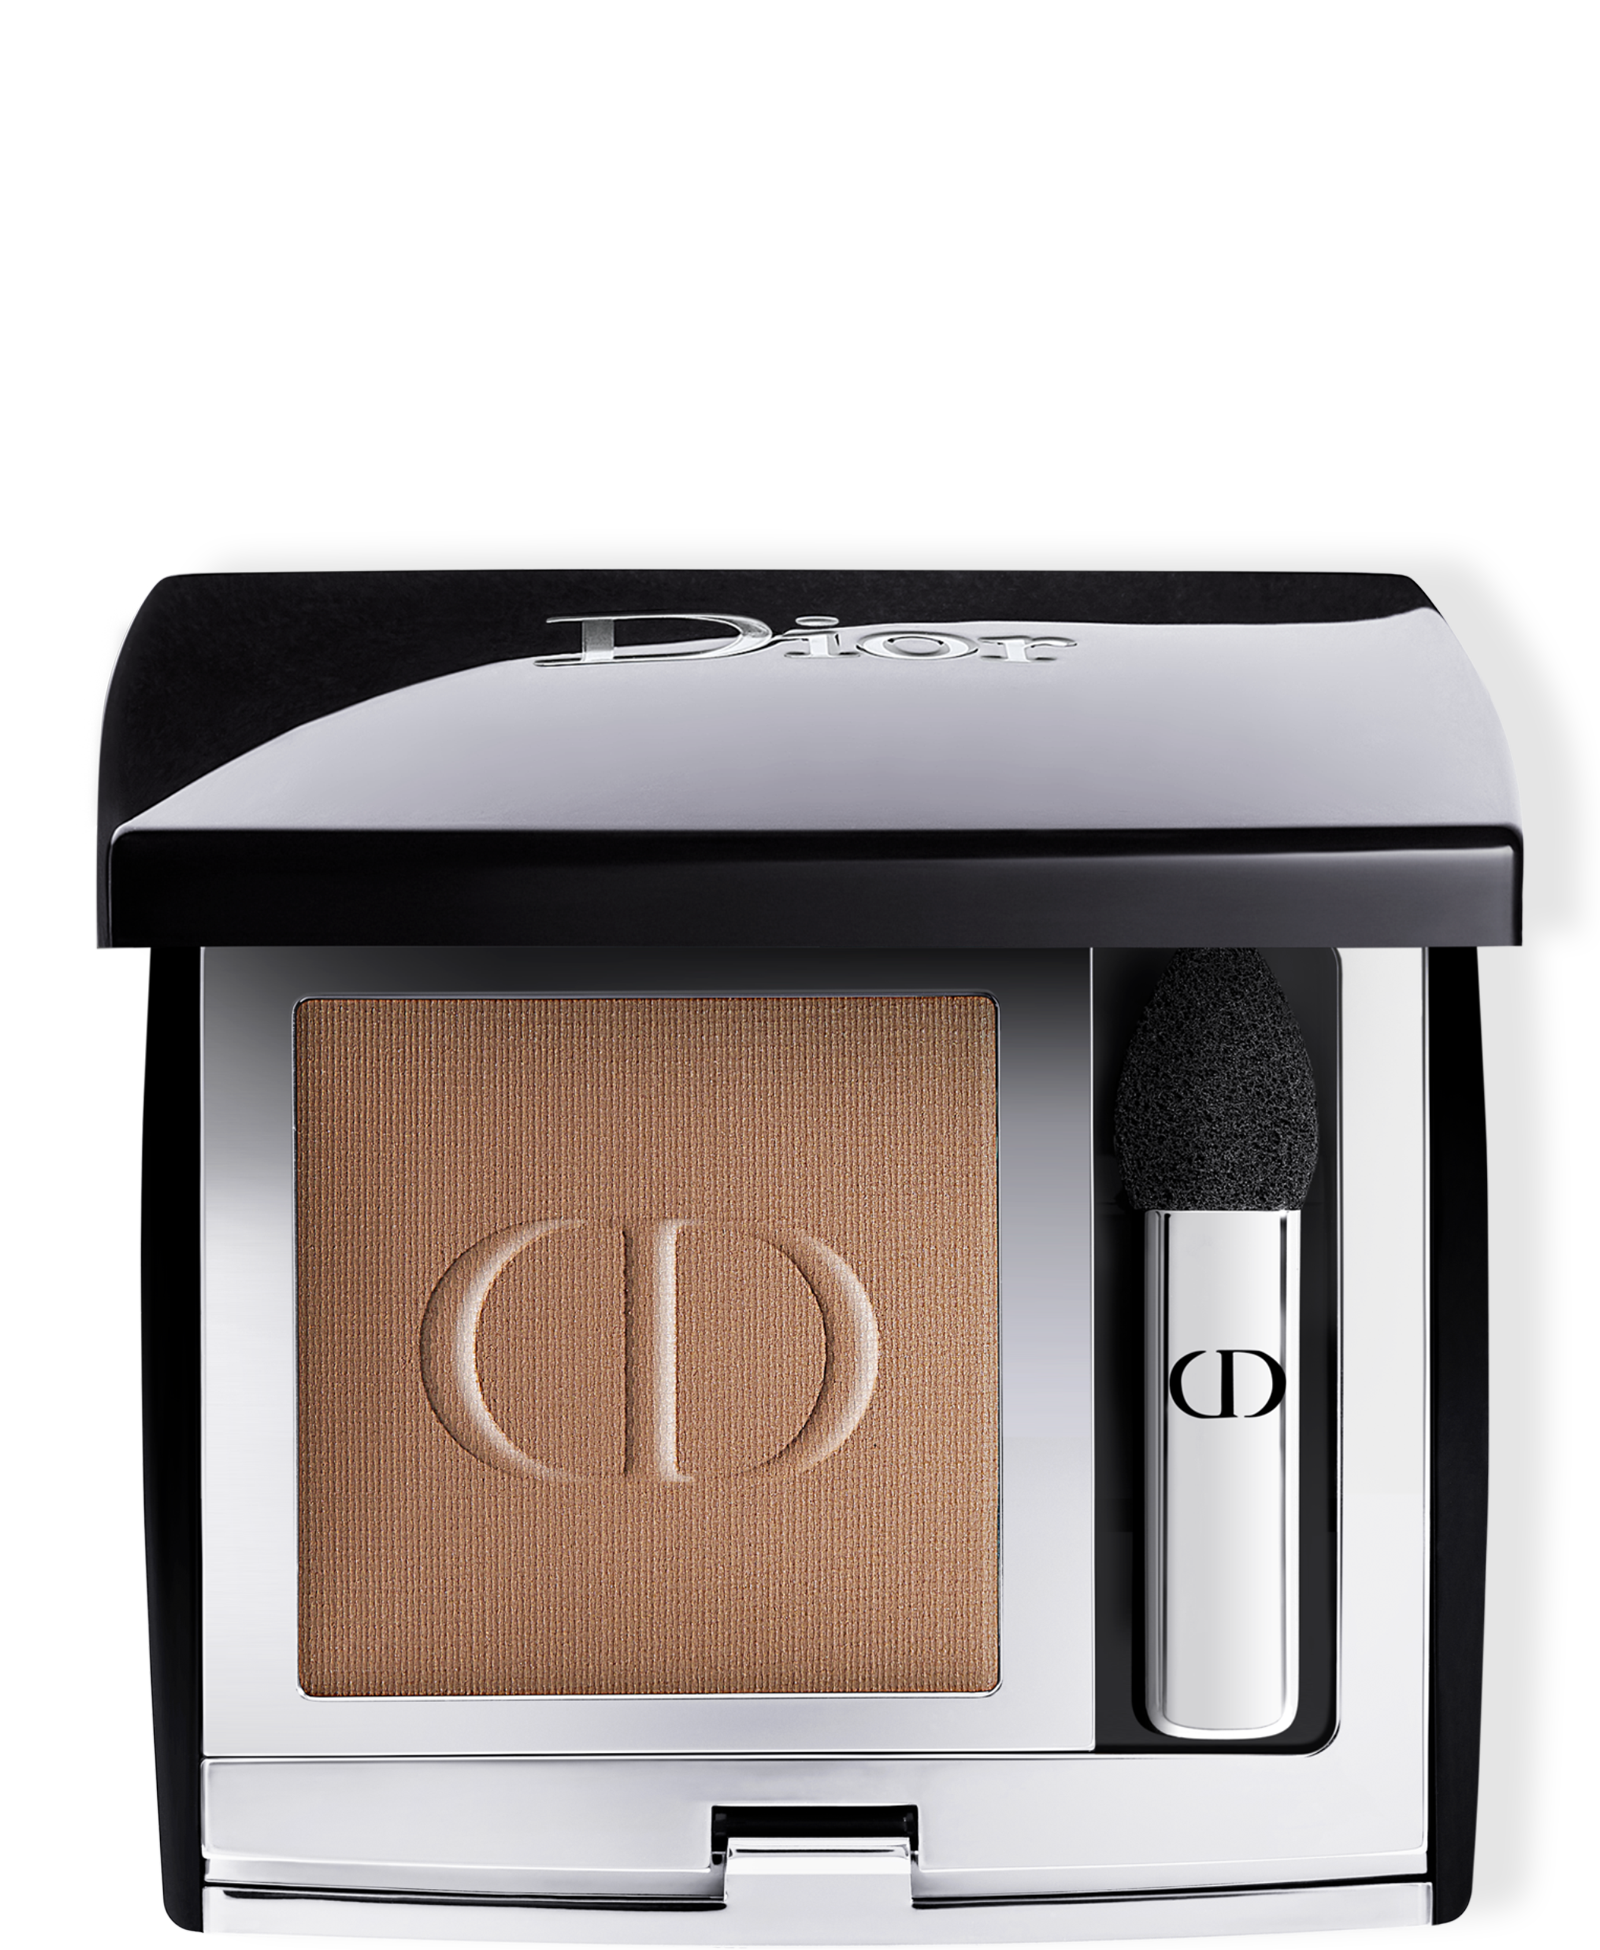 DIOR Mono Couleur Couture Eyeshadow, 443 cashmere